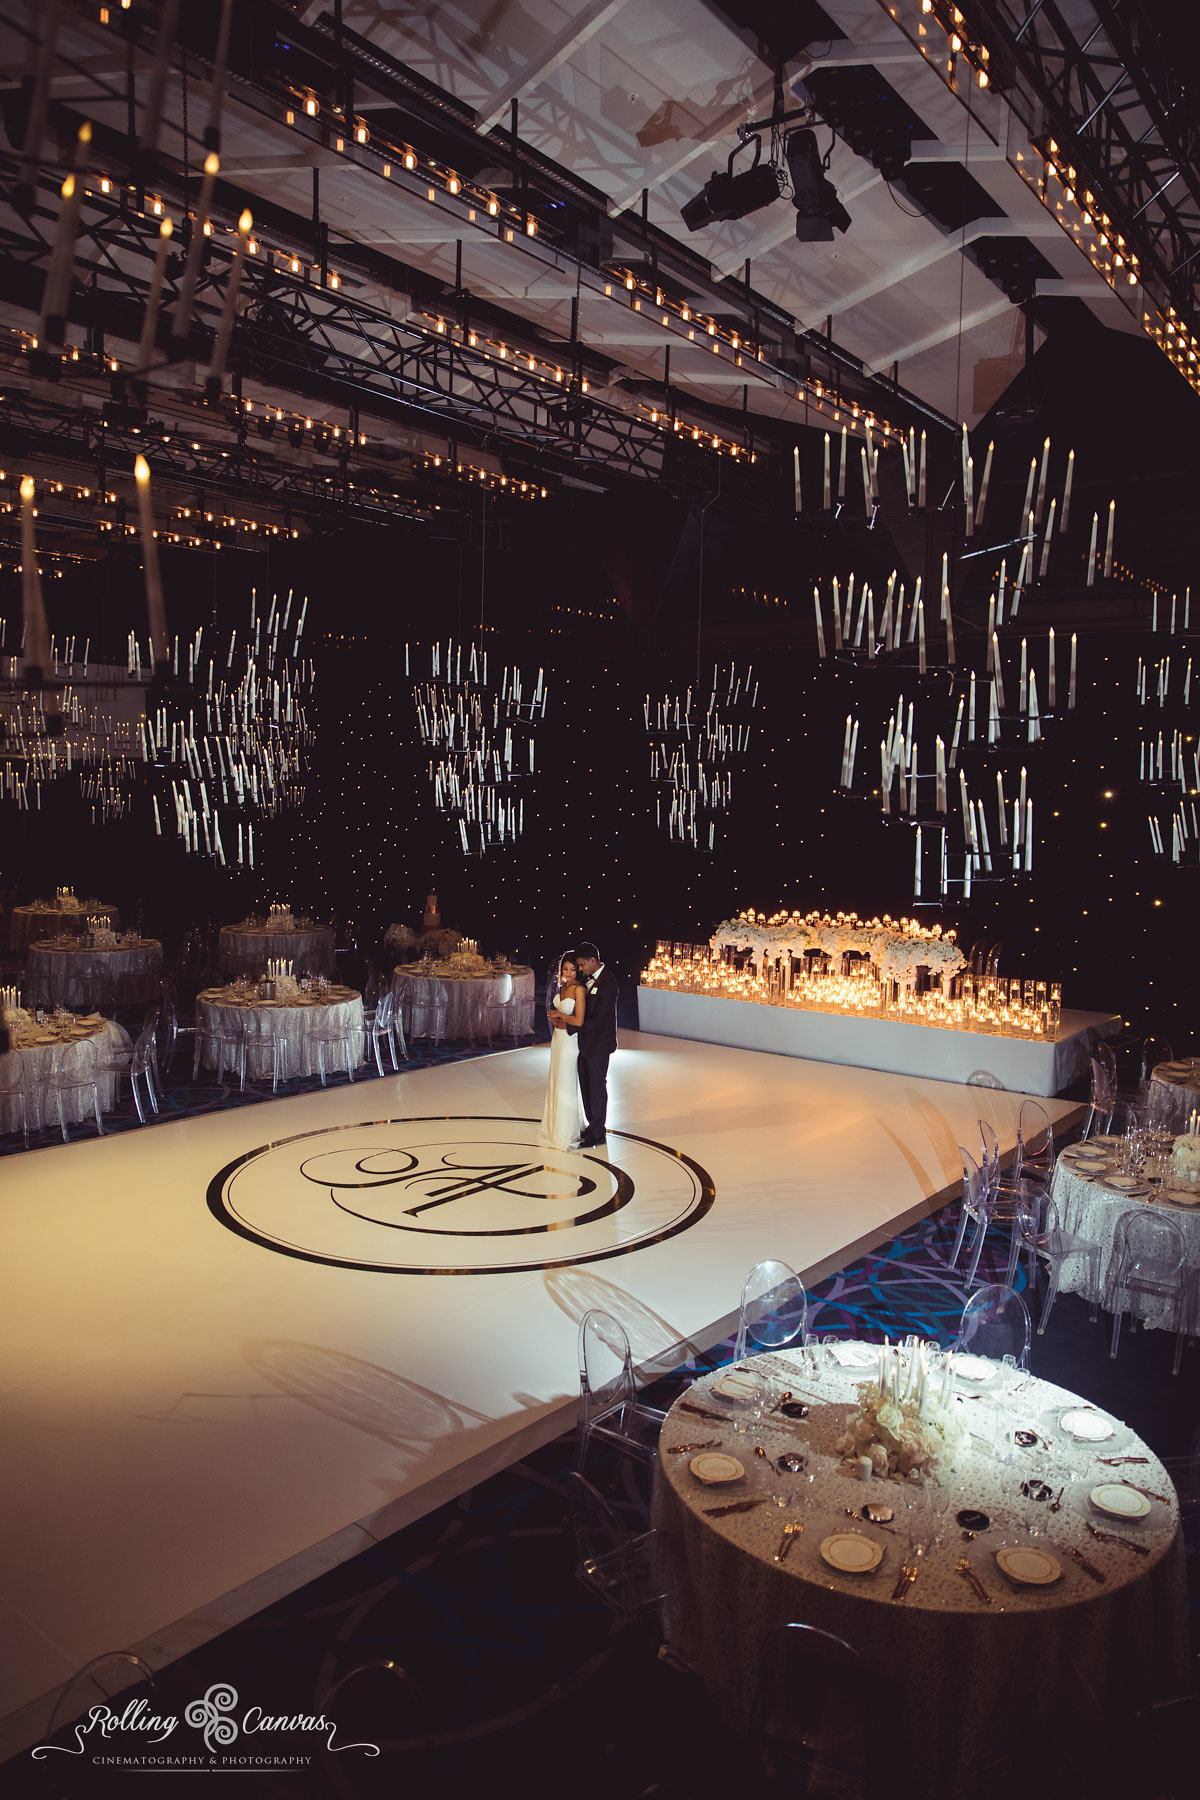 Wedding_Photography_Sydney_Rolling_Canvas_Presentation_black_white_elegant_reception_chandeliers_fairylights_white_dancefloor_luxury_linen_decor_Hyatt_Regency_Sydney-57249.jpg